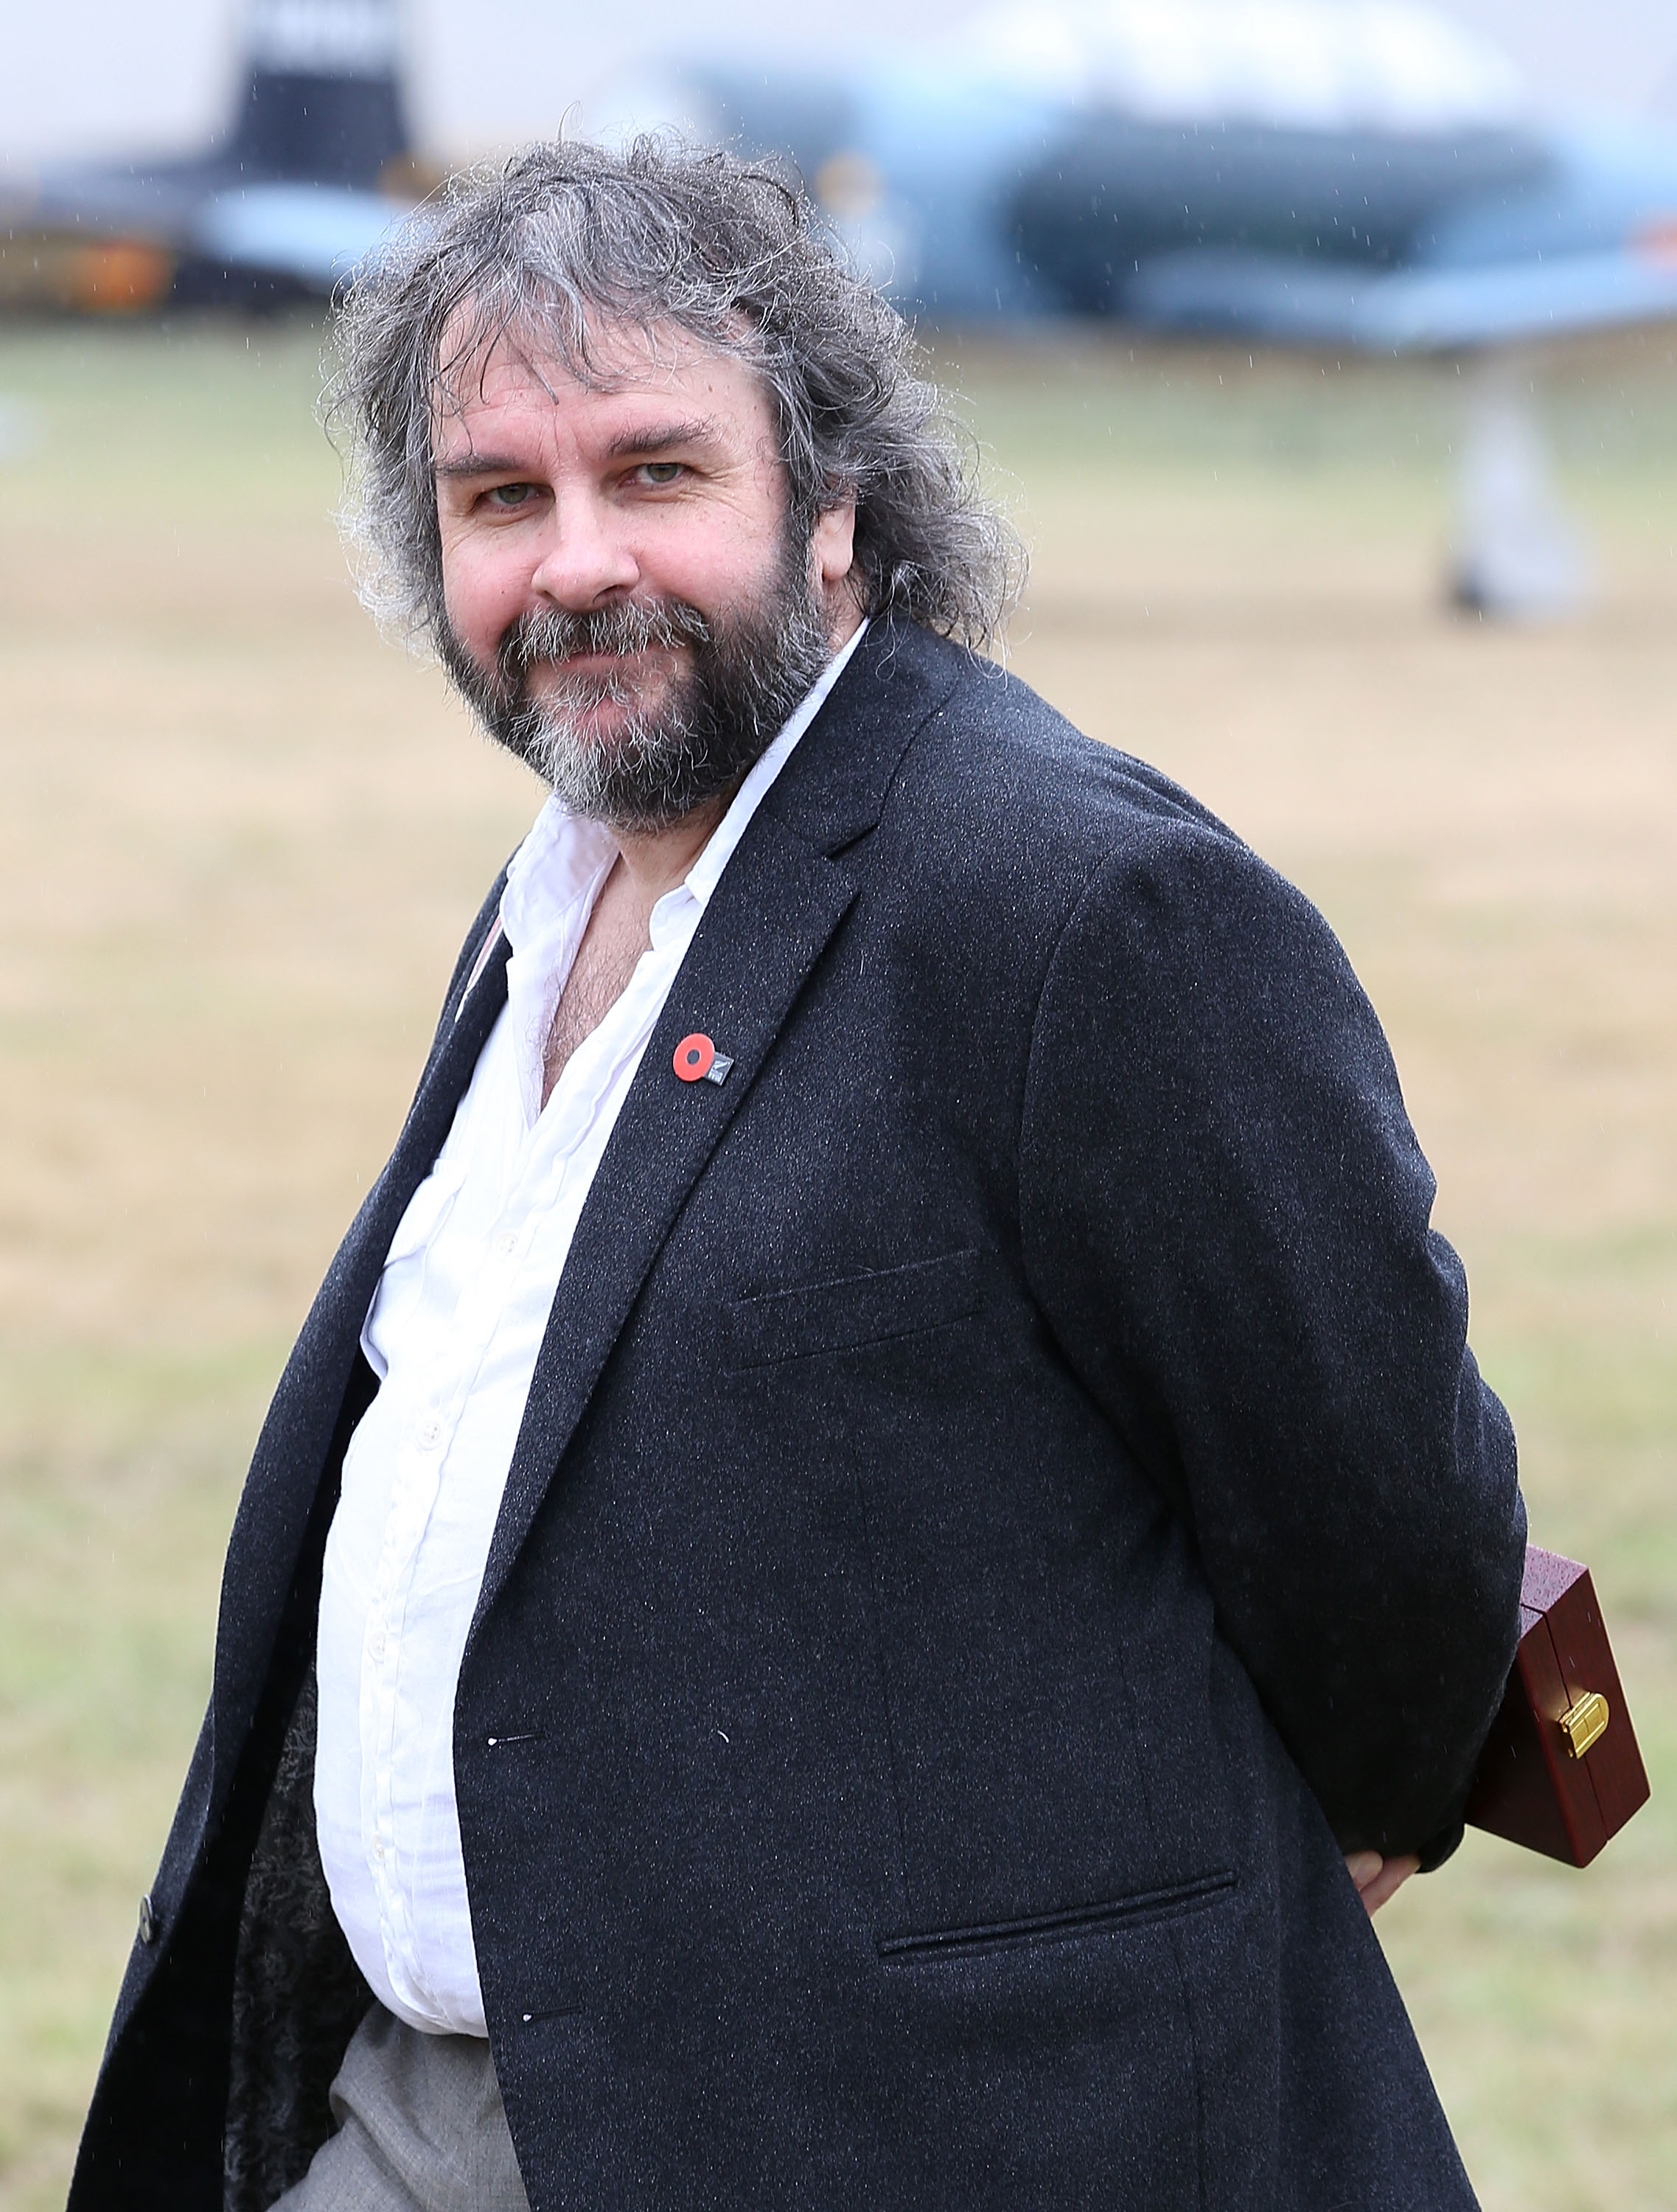 Sir Peter Jackson attends the 'Knights of the Sky' exhibition at Omaka Aviation Heritage Centre in Blenheim on April 10, 2014 in Wellington, New Zealand.